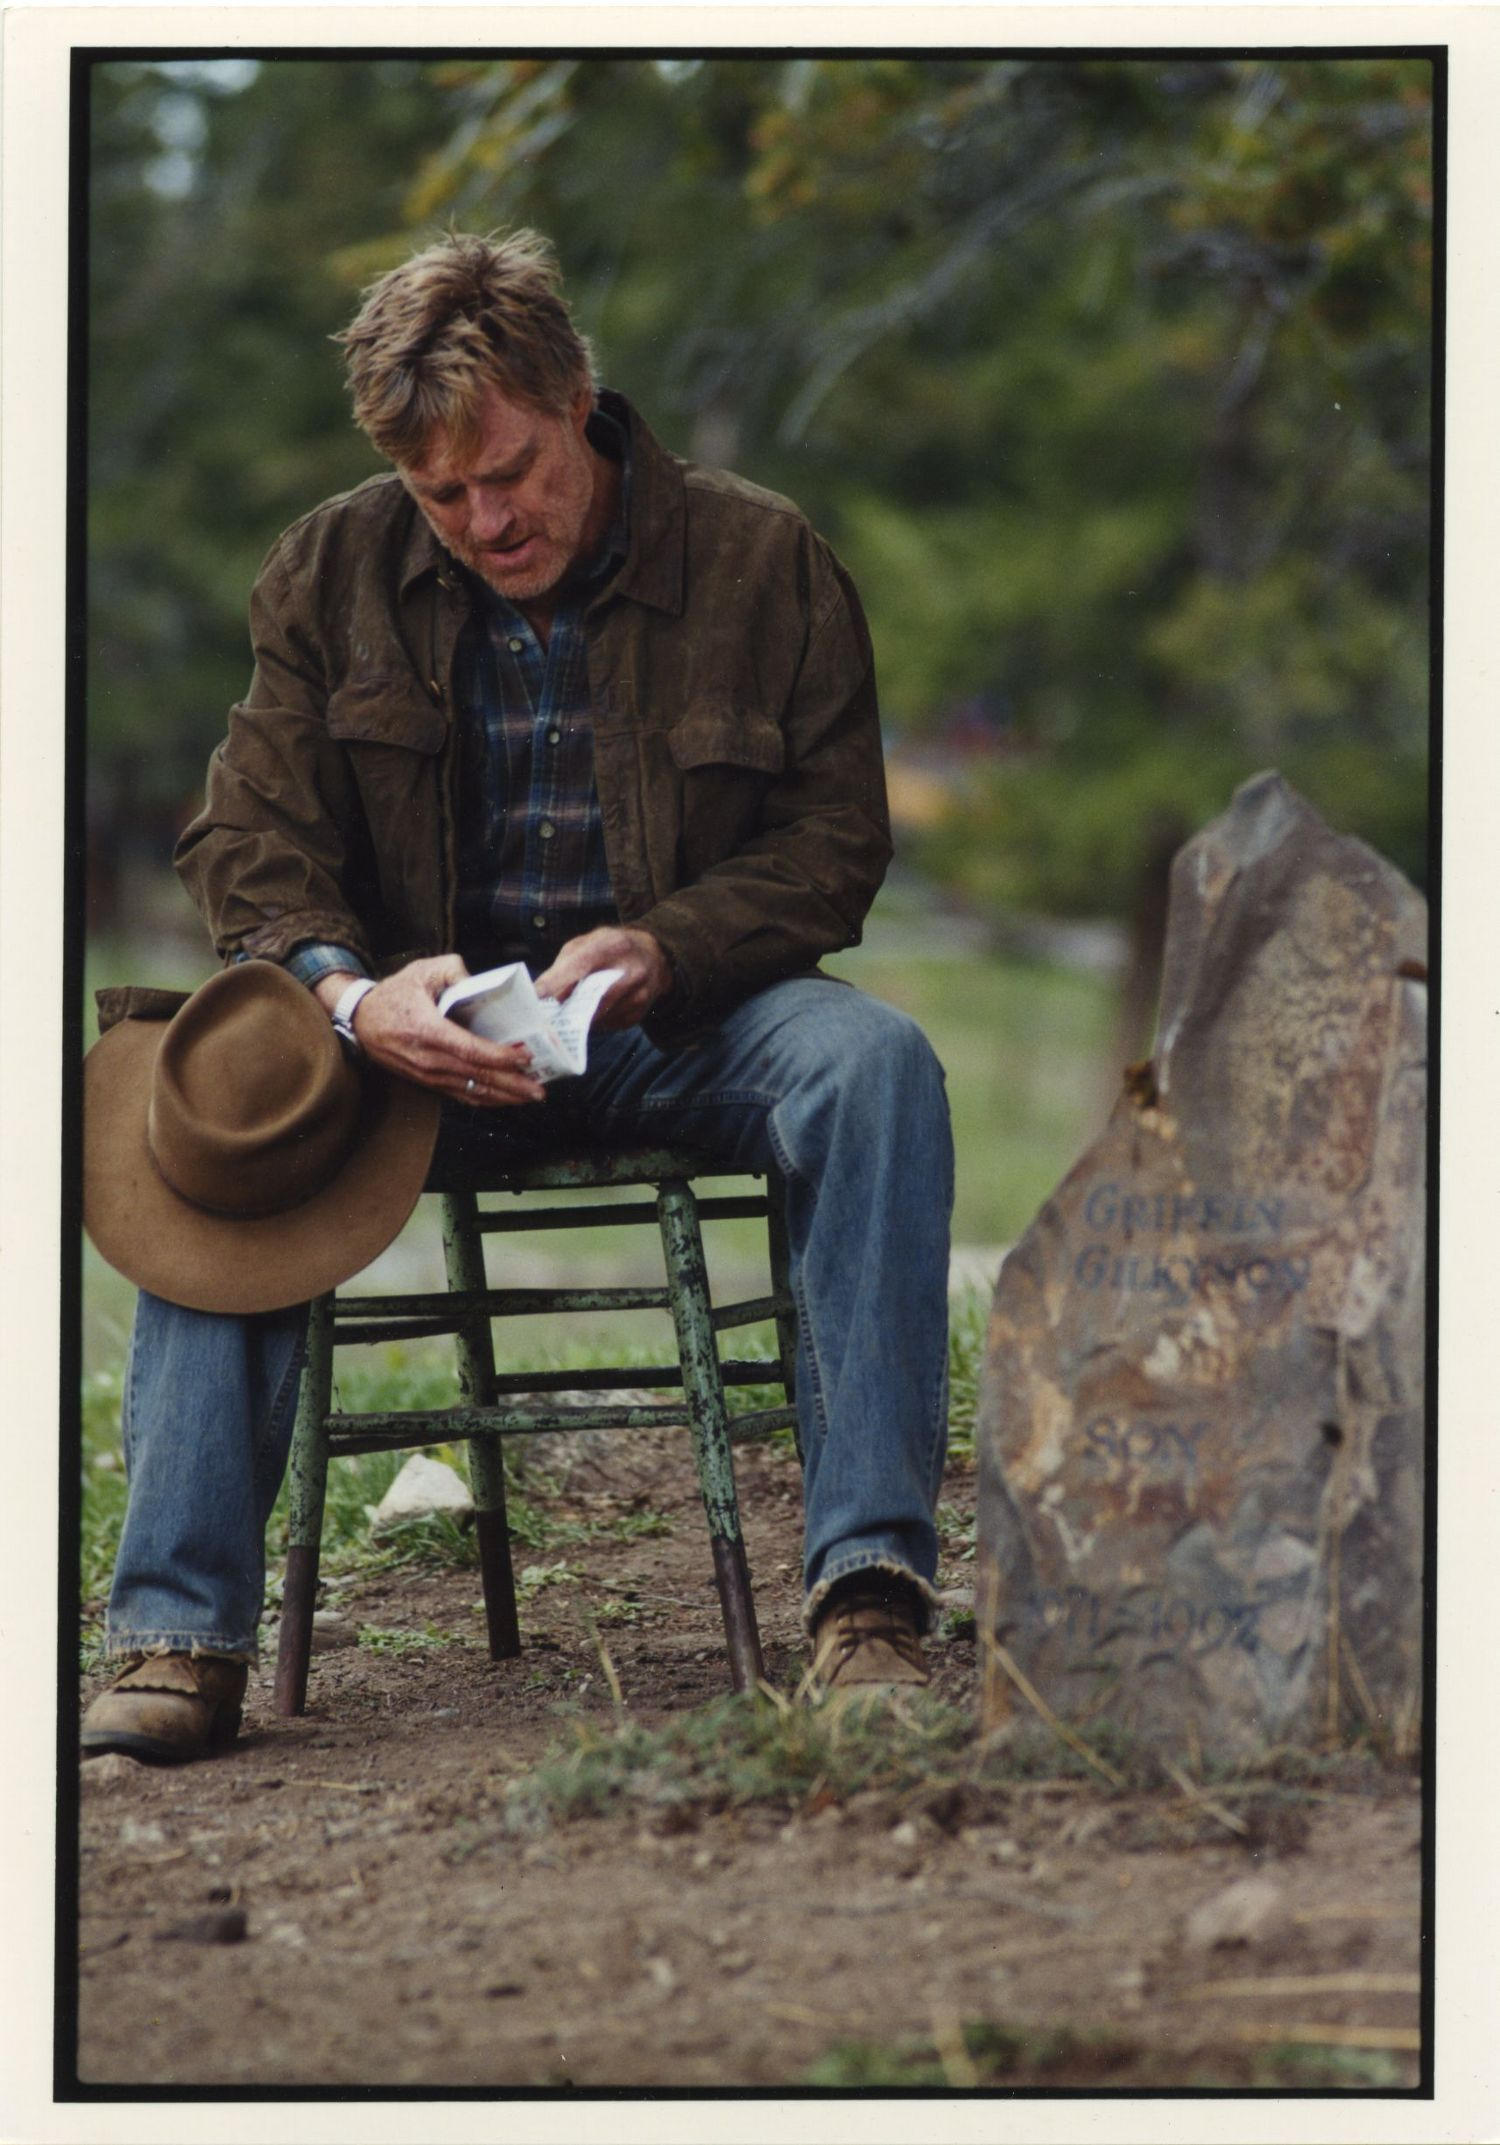 Unfinished Life R.Redford (1)